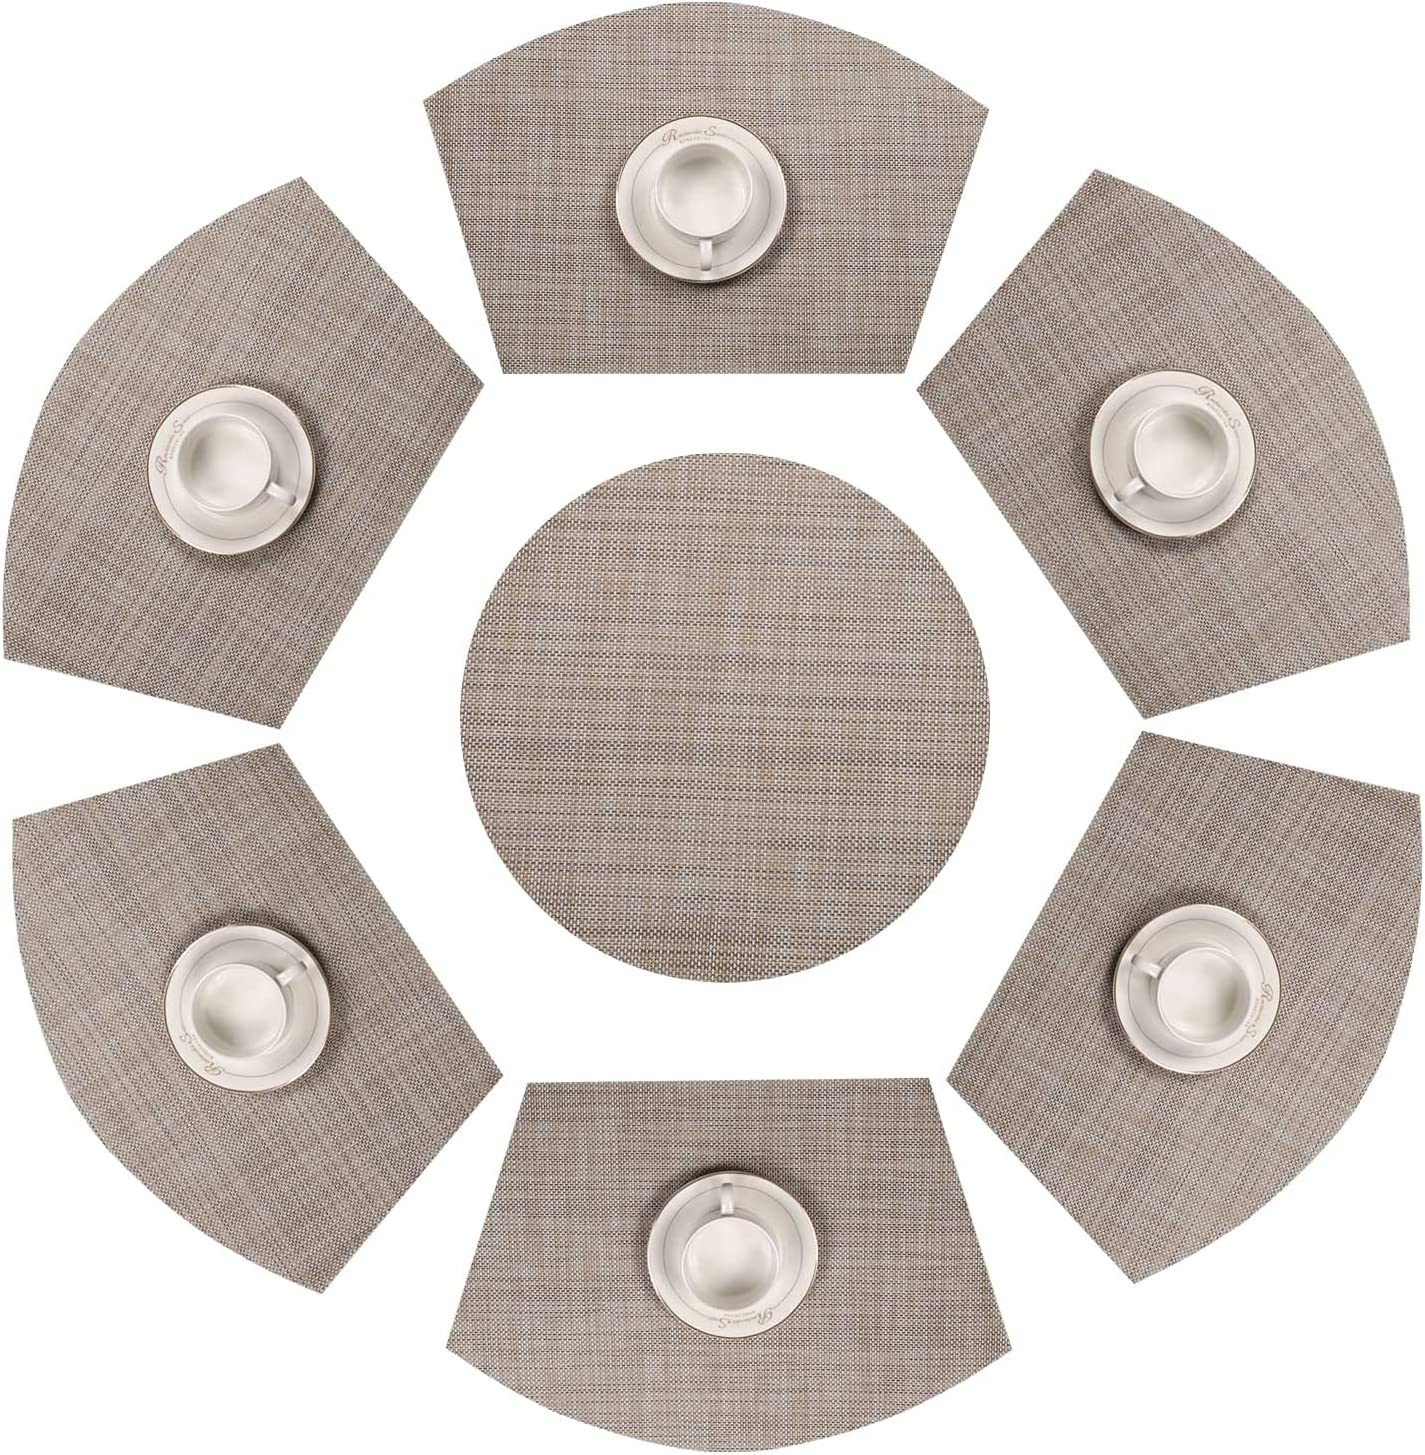 SHACOS Round Table Placemats Set of 7 Wedge Placemats with Centerpiece Round Mats Heat Resistant Washable (7, Beige White Black)